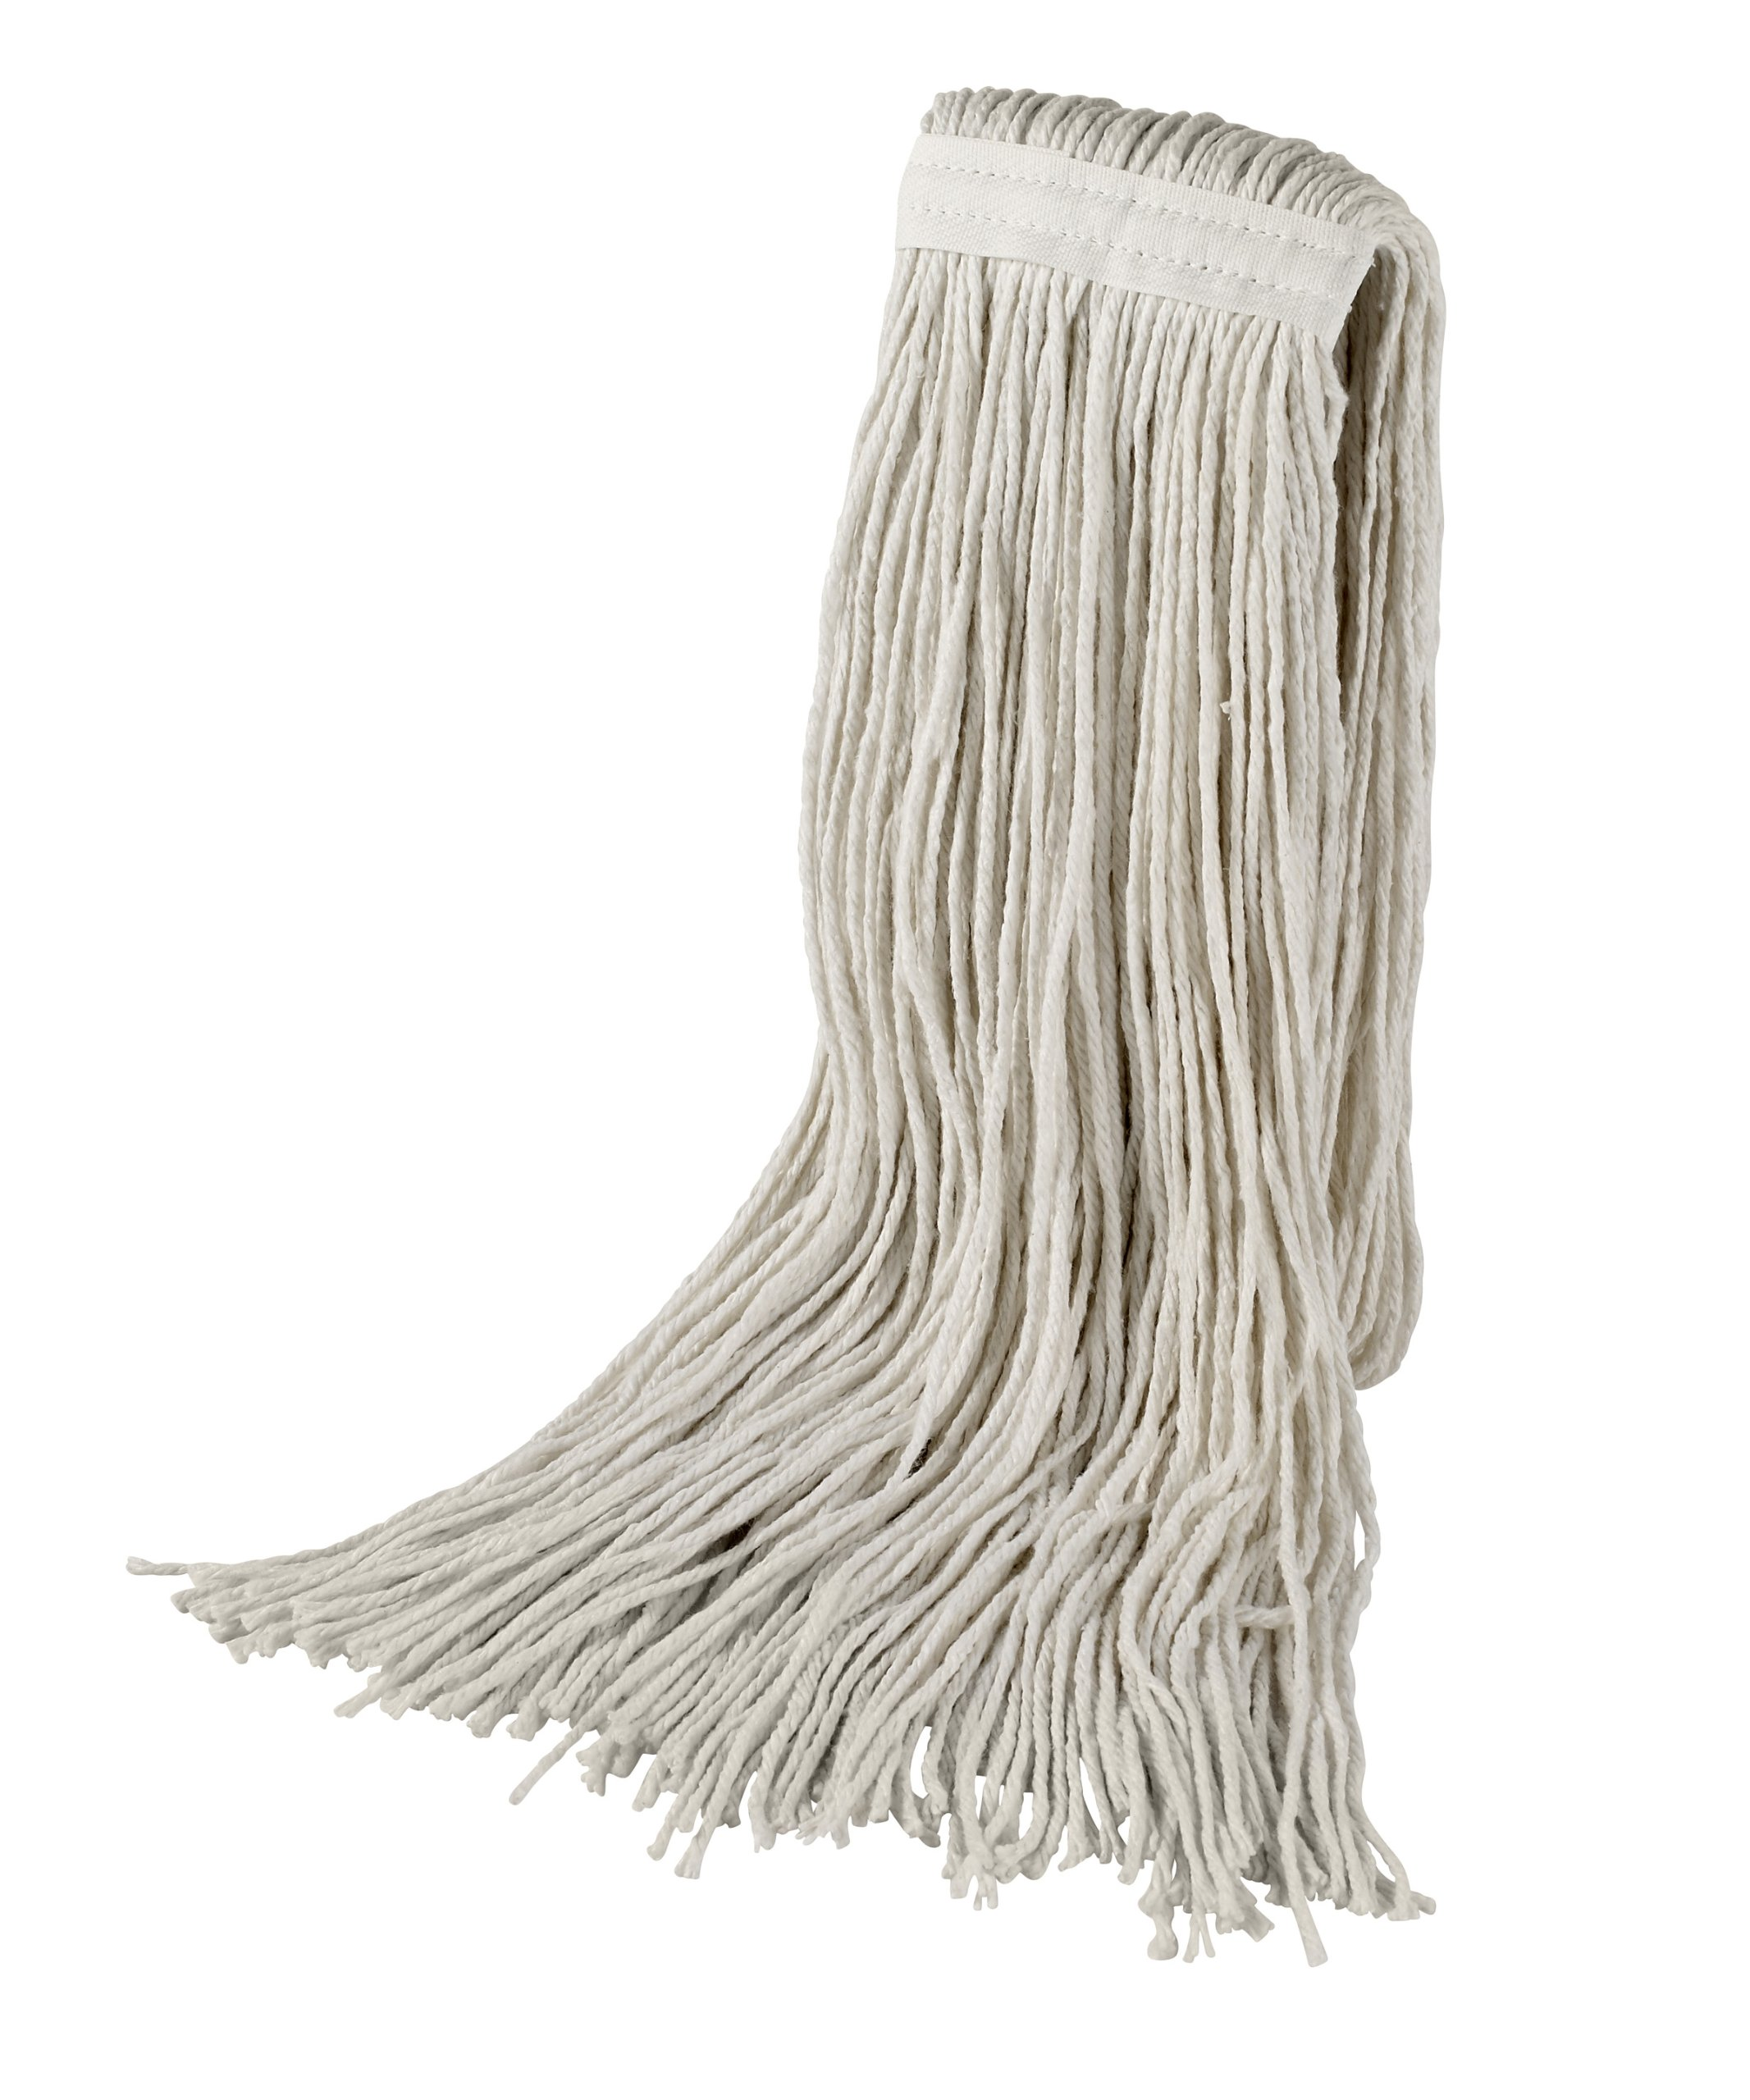 Bristles Wet Cut End Mop Head Replacement, Pack of 12 (32#, White)